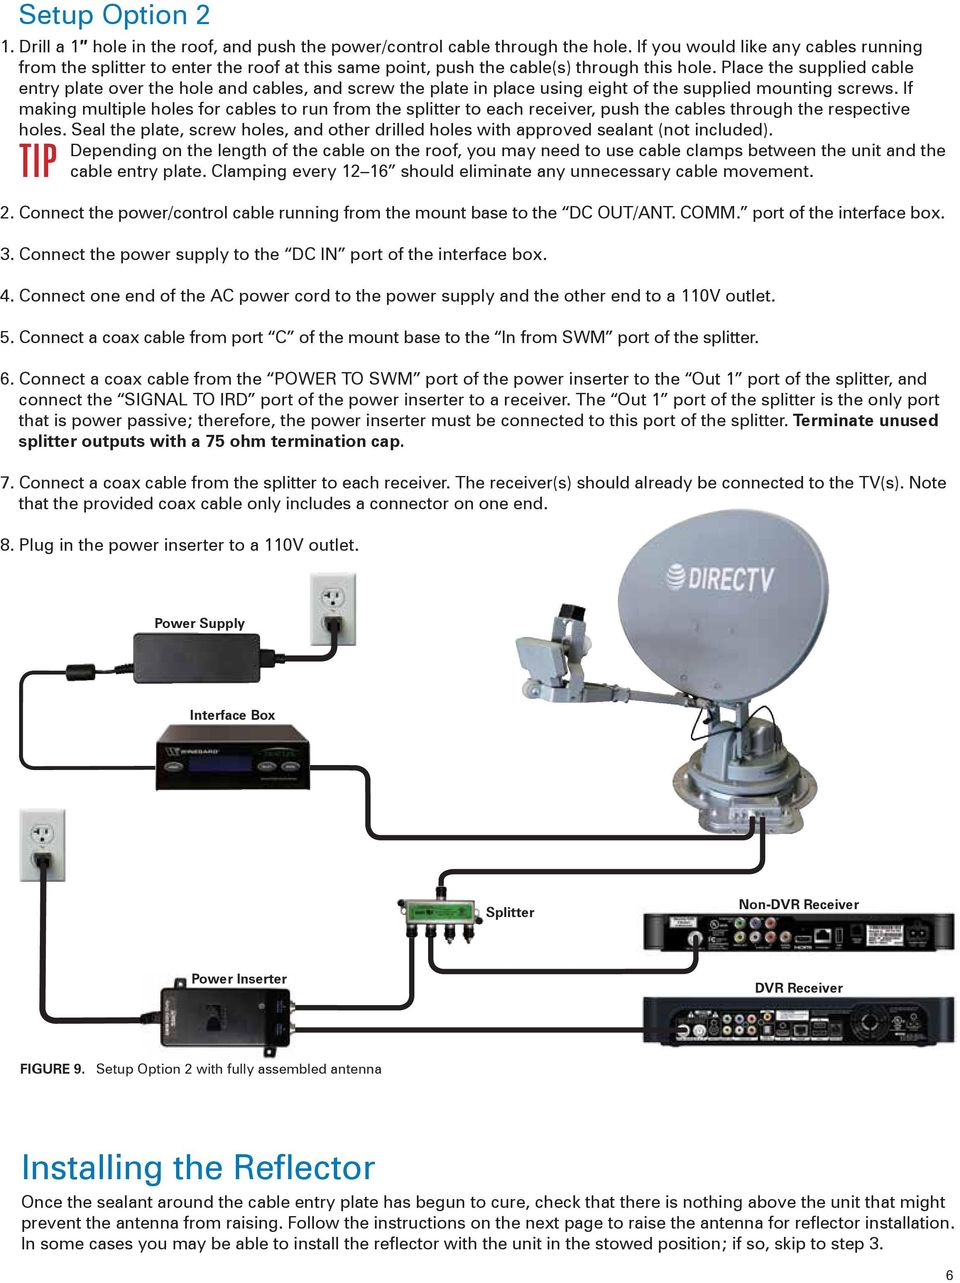 Directv Swm Splitter Wiring Diagram from docplayer.net